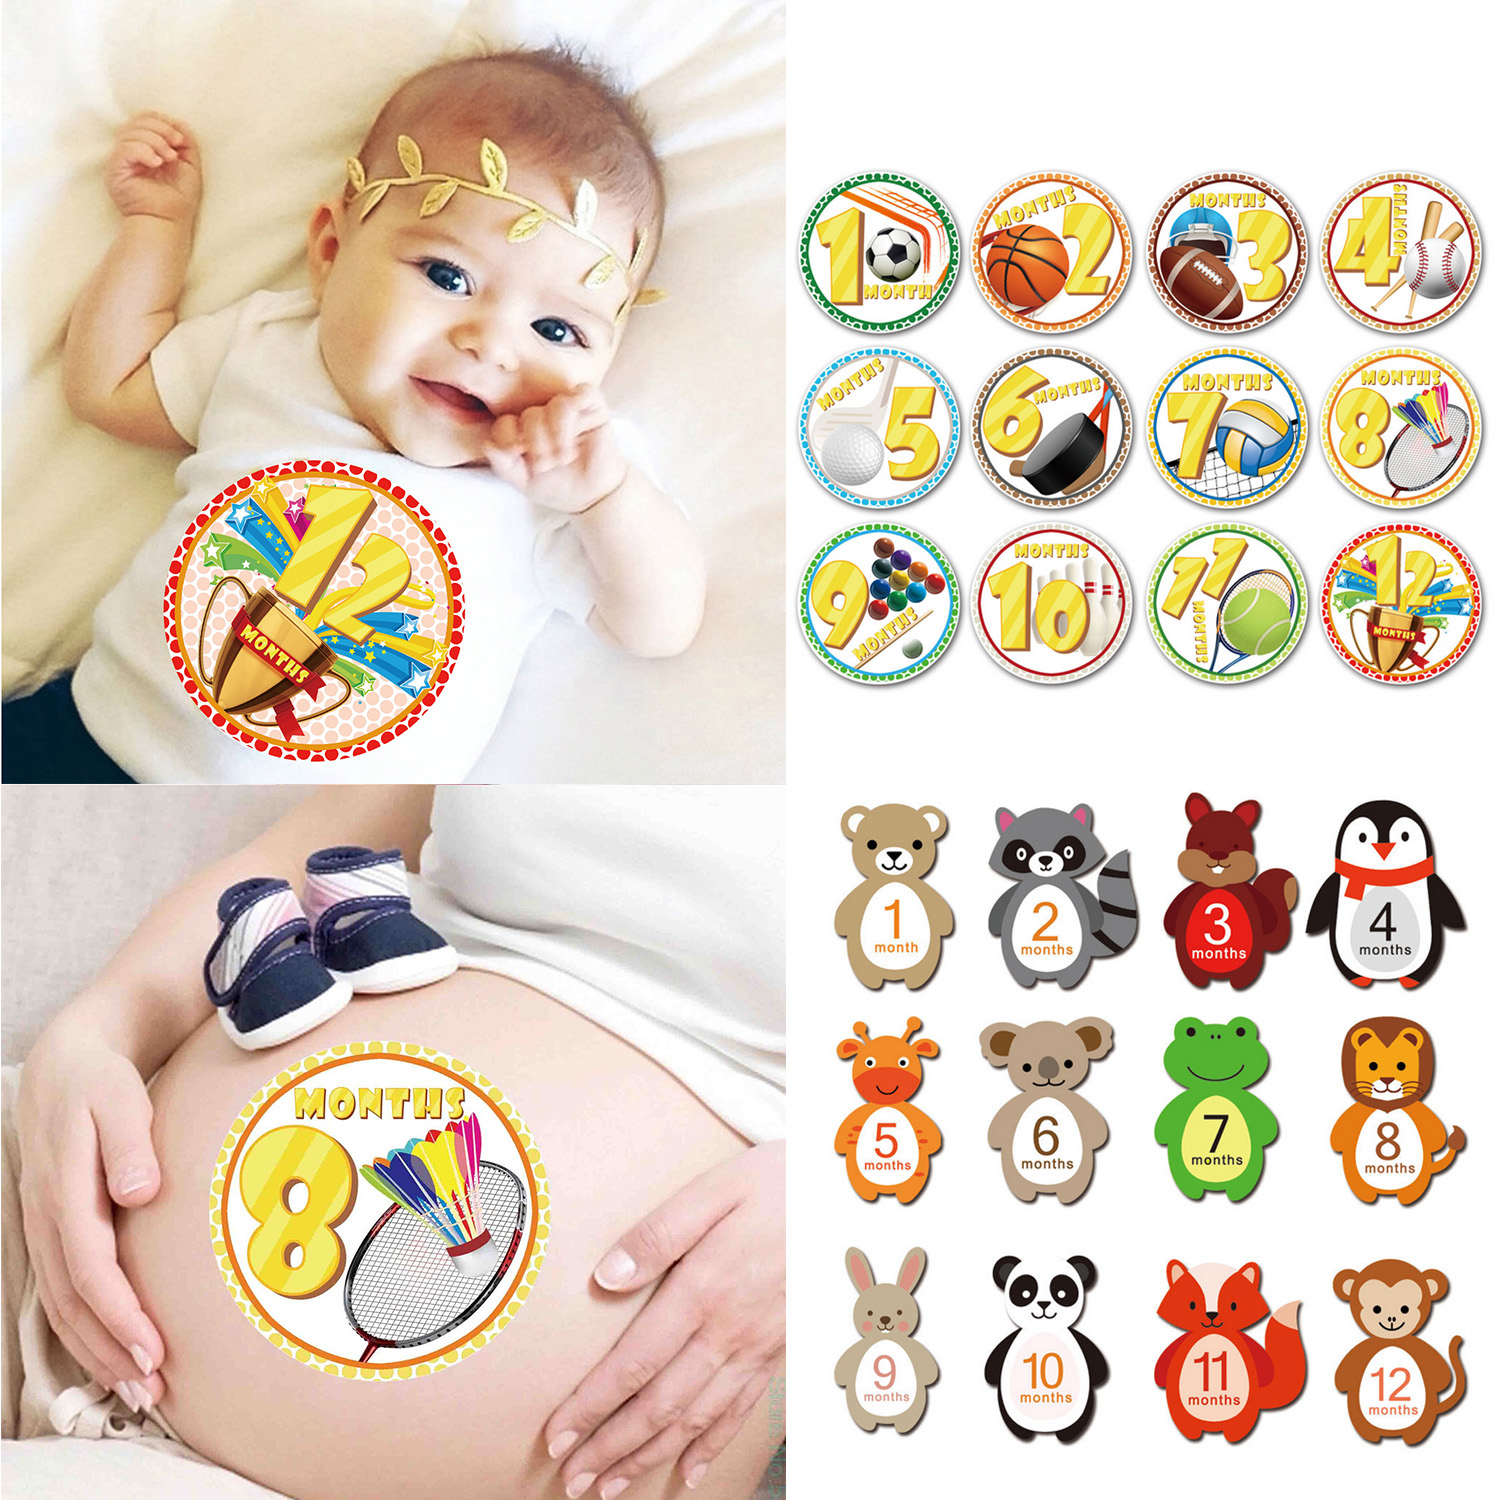 12PCS Baby Milestone Stickers Infants 1-12 Months Growth Record Photograph Monthly Stickers DIY Commemorative Photo Booth Props